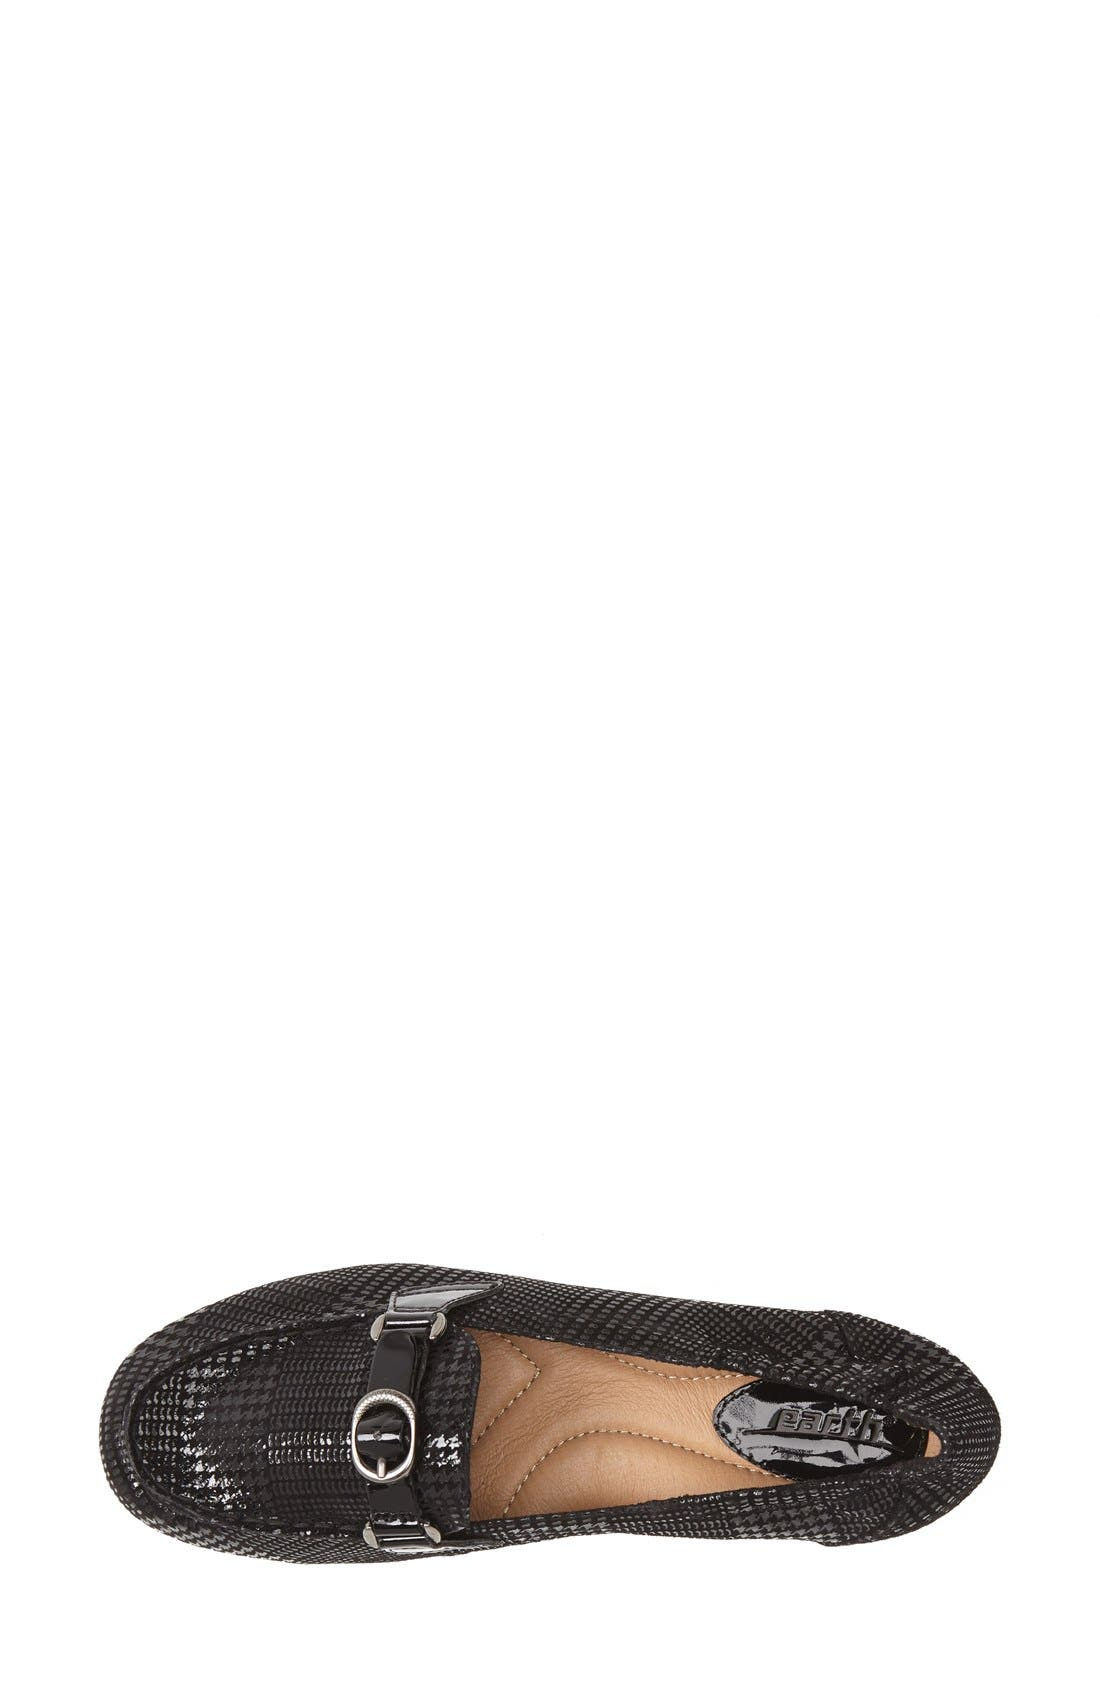 Alternate Image 3  - Earth® 'Scout' Loafer (Women)